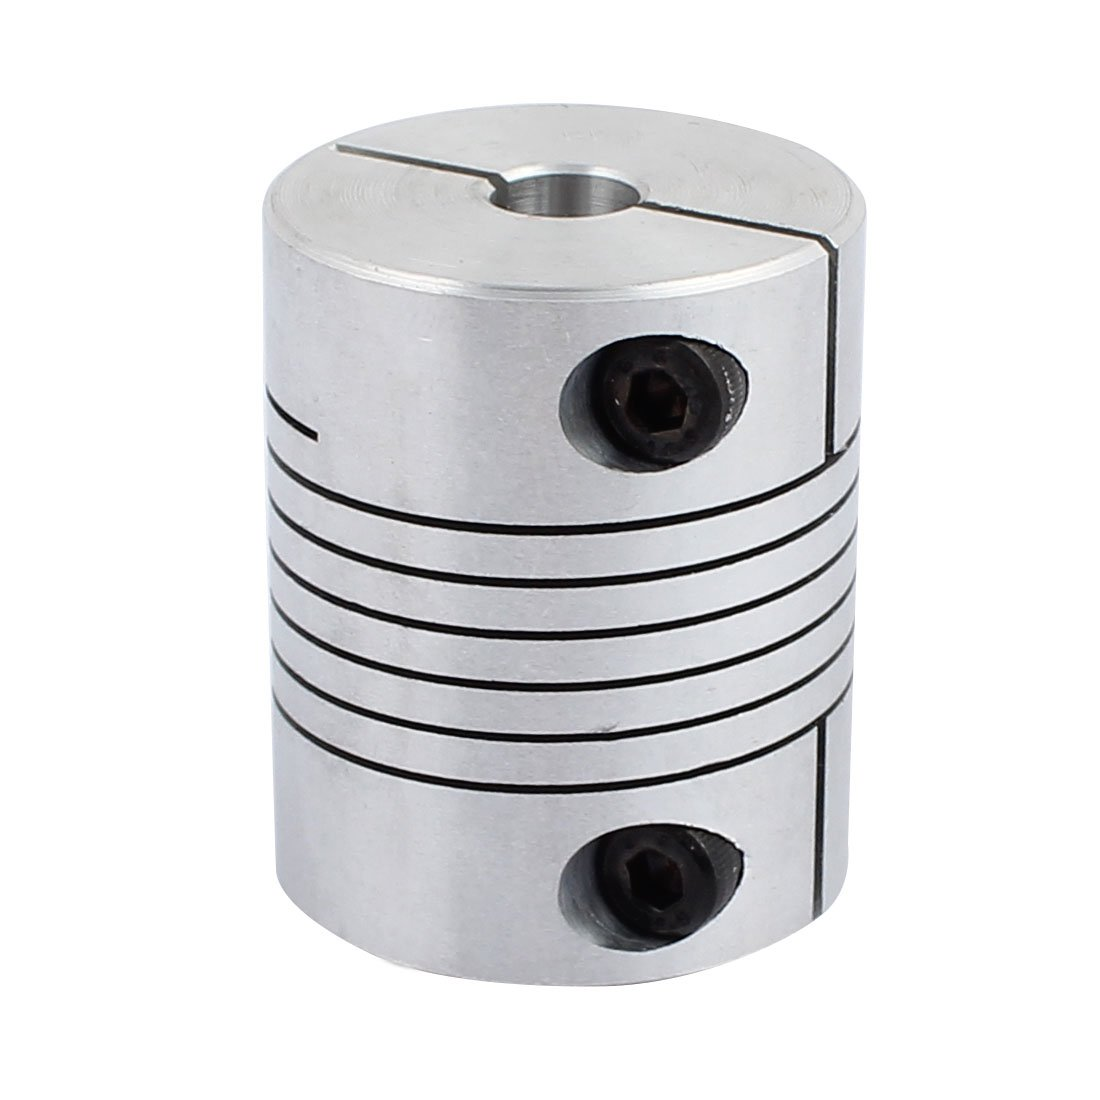 uxcell 8mm to 16mm Shaft Coupling 40mm Length 32mm Diameter Stepper Motor Coupler Aluminum Alloy Joint Connector for 3D Printer CNC Machine DIY Encoder